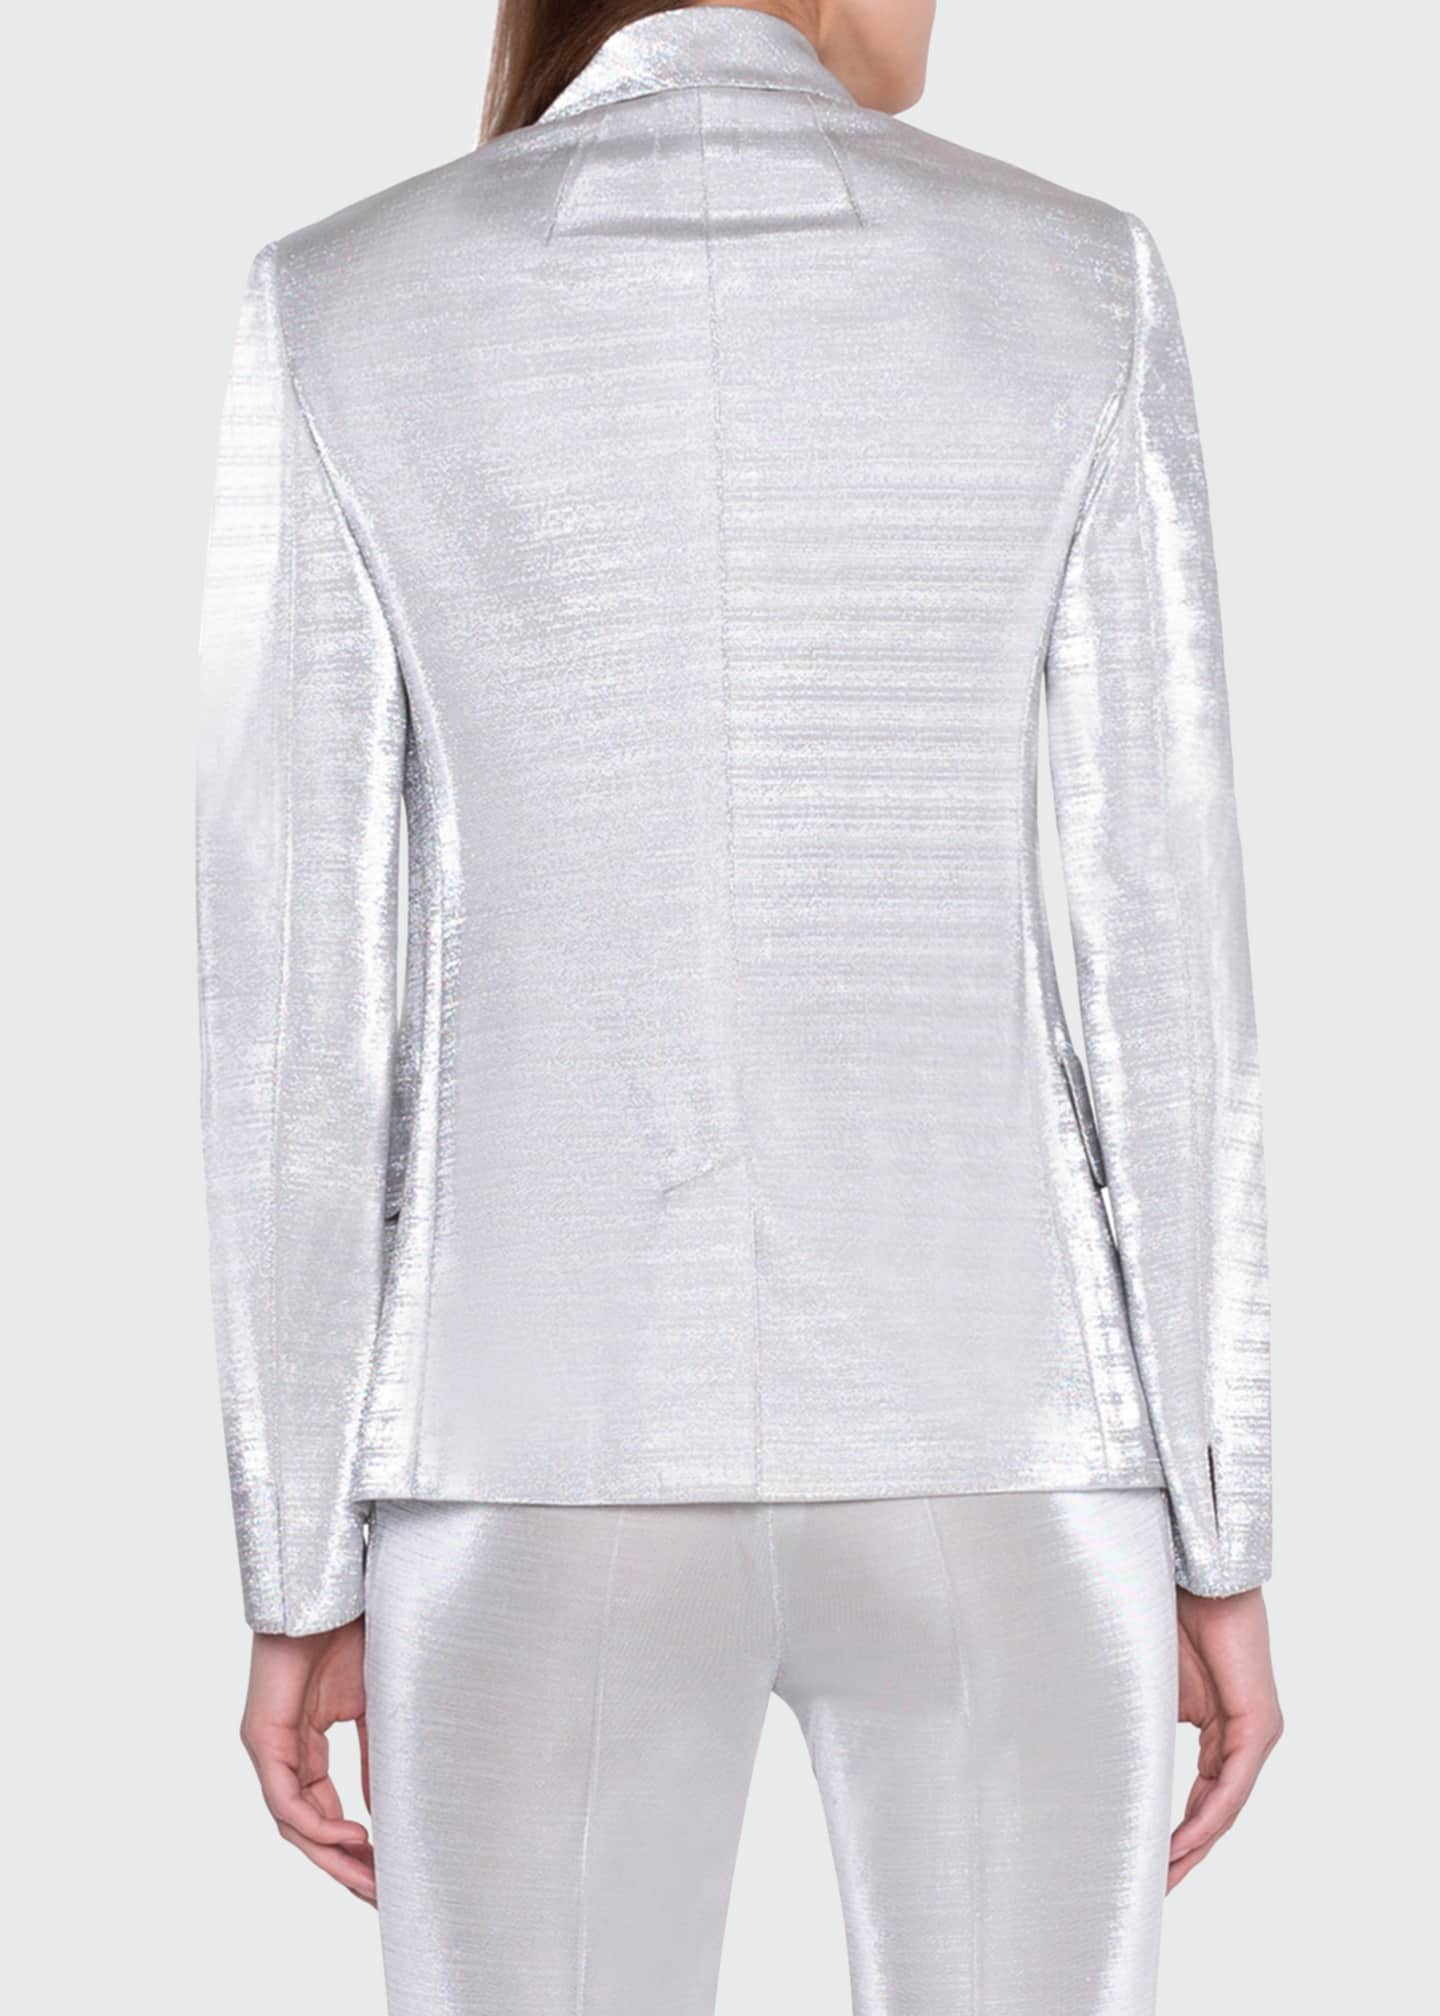 Image 4 of 4: Gloriana Metallic Jersey Jacket